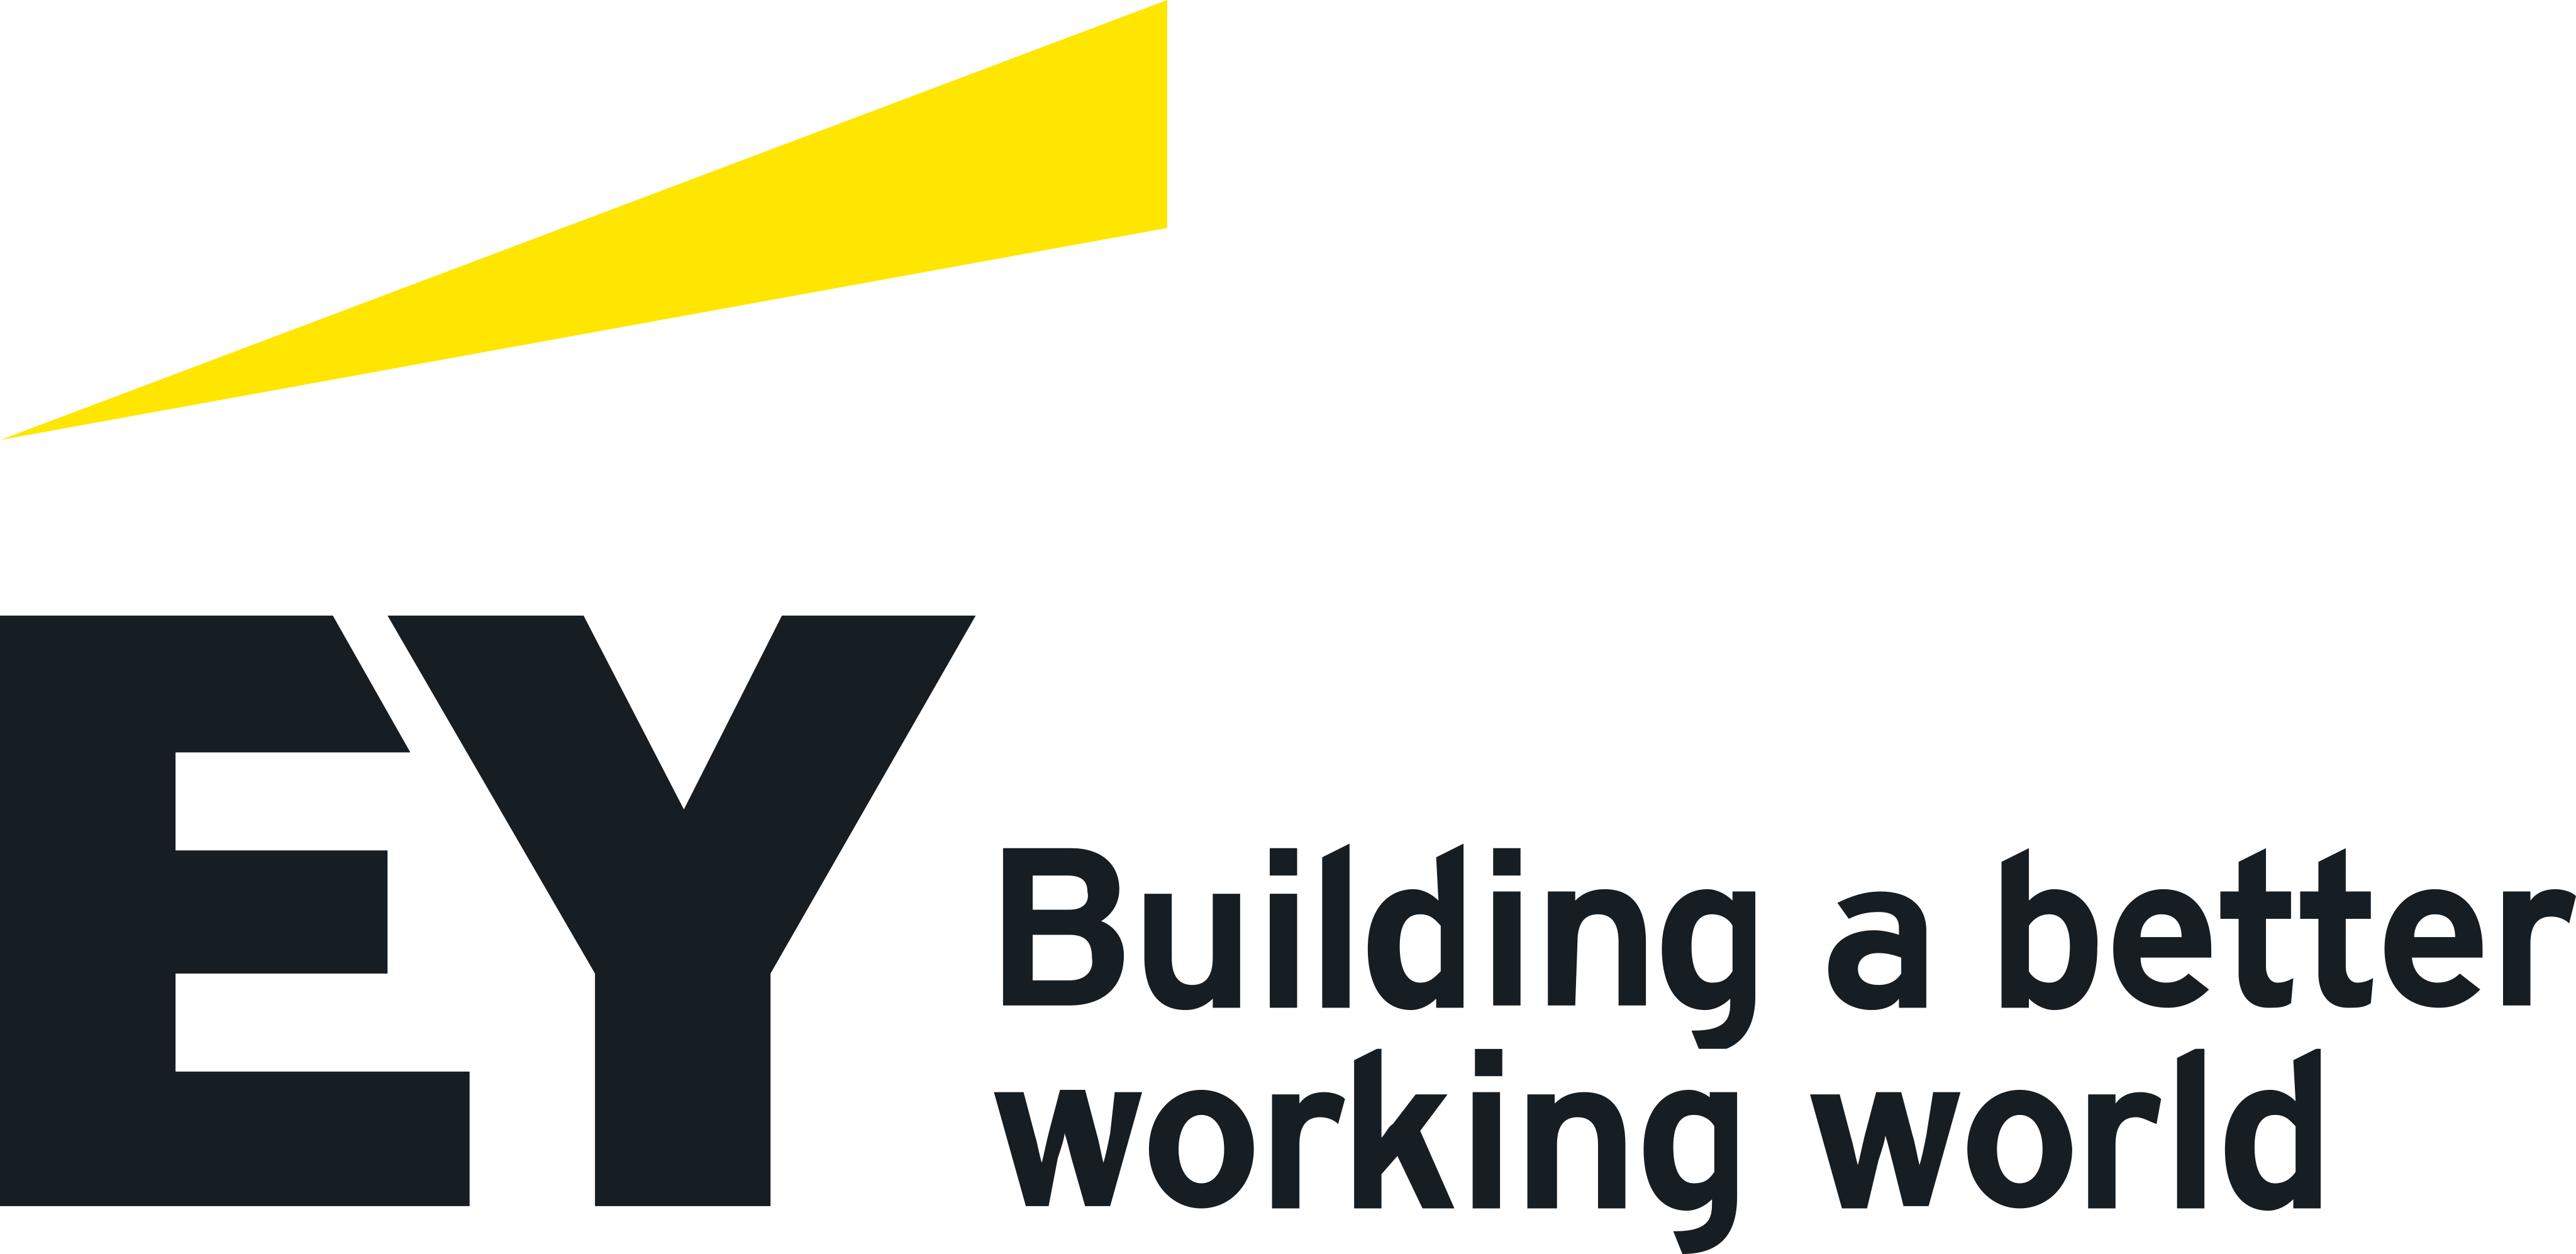 Ernst & Young Logo.